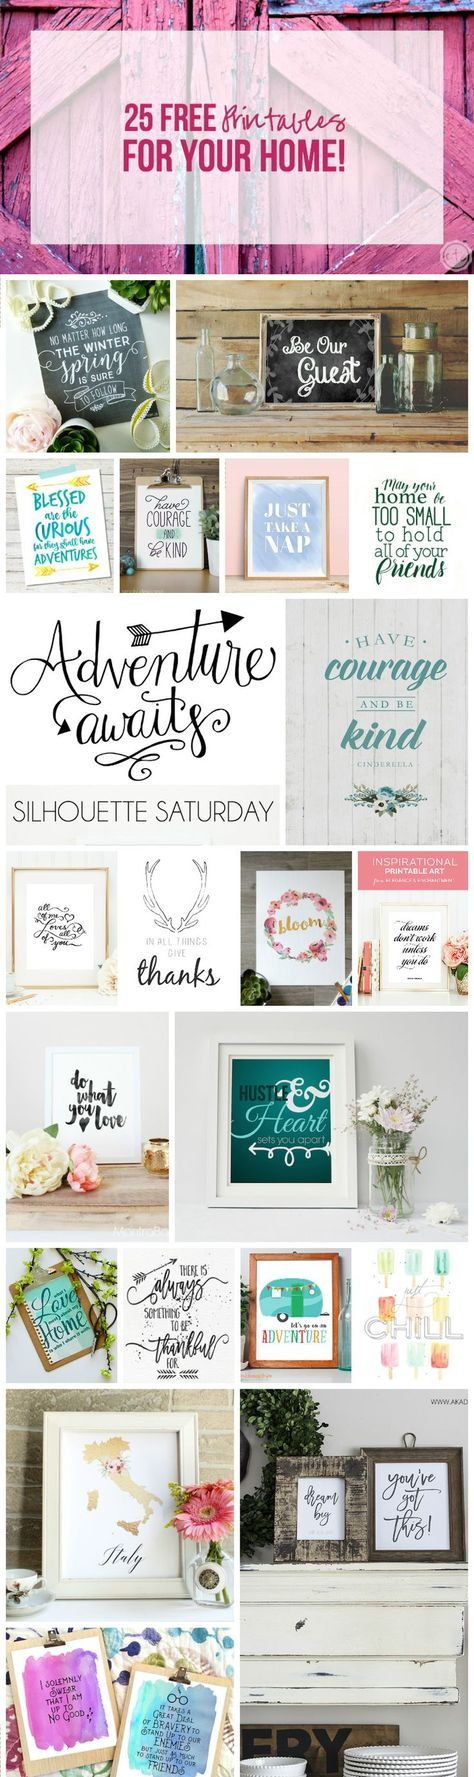 25 FREE Printables For Your Home! - Happily Ever After, Etc.